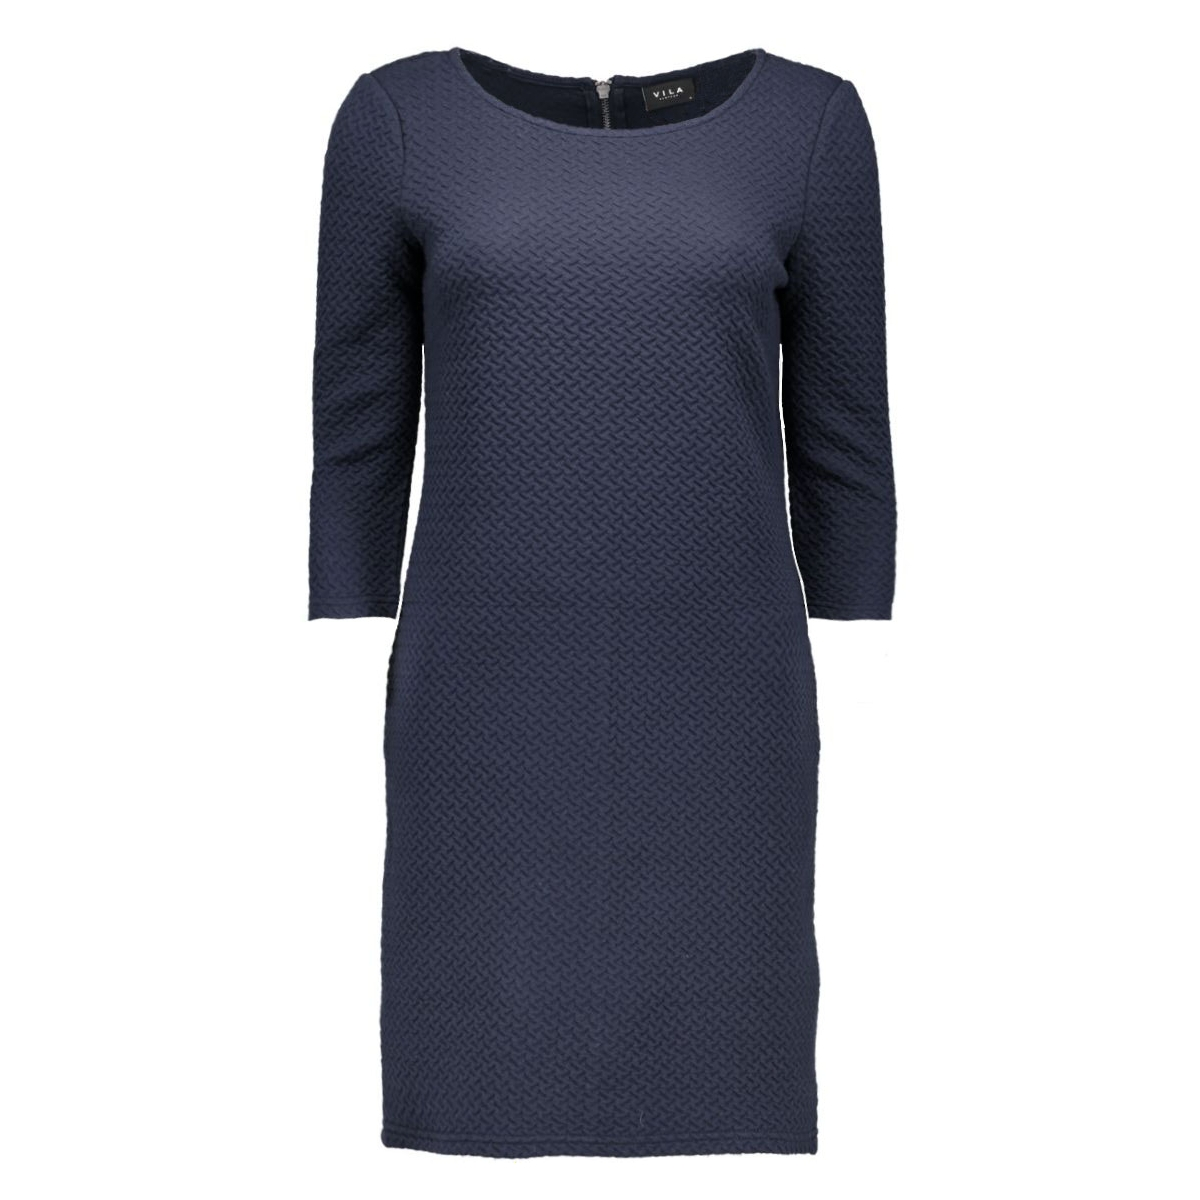 vinaja 3/4 sleeve dress-noos 14036251 vila jurk total eclipse